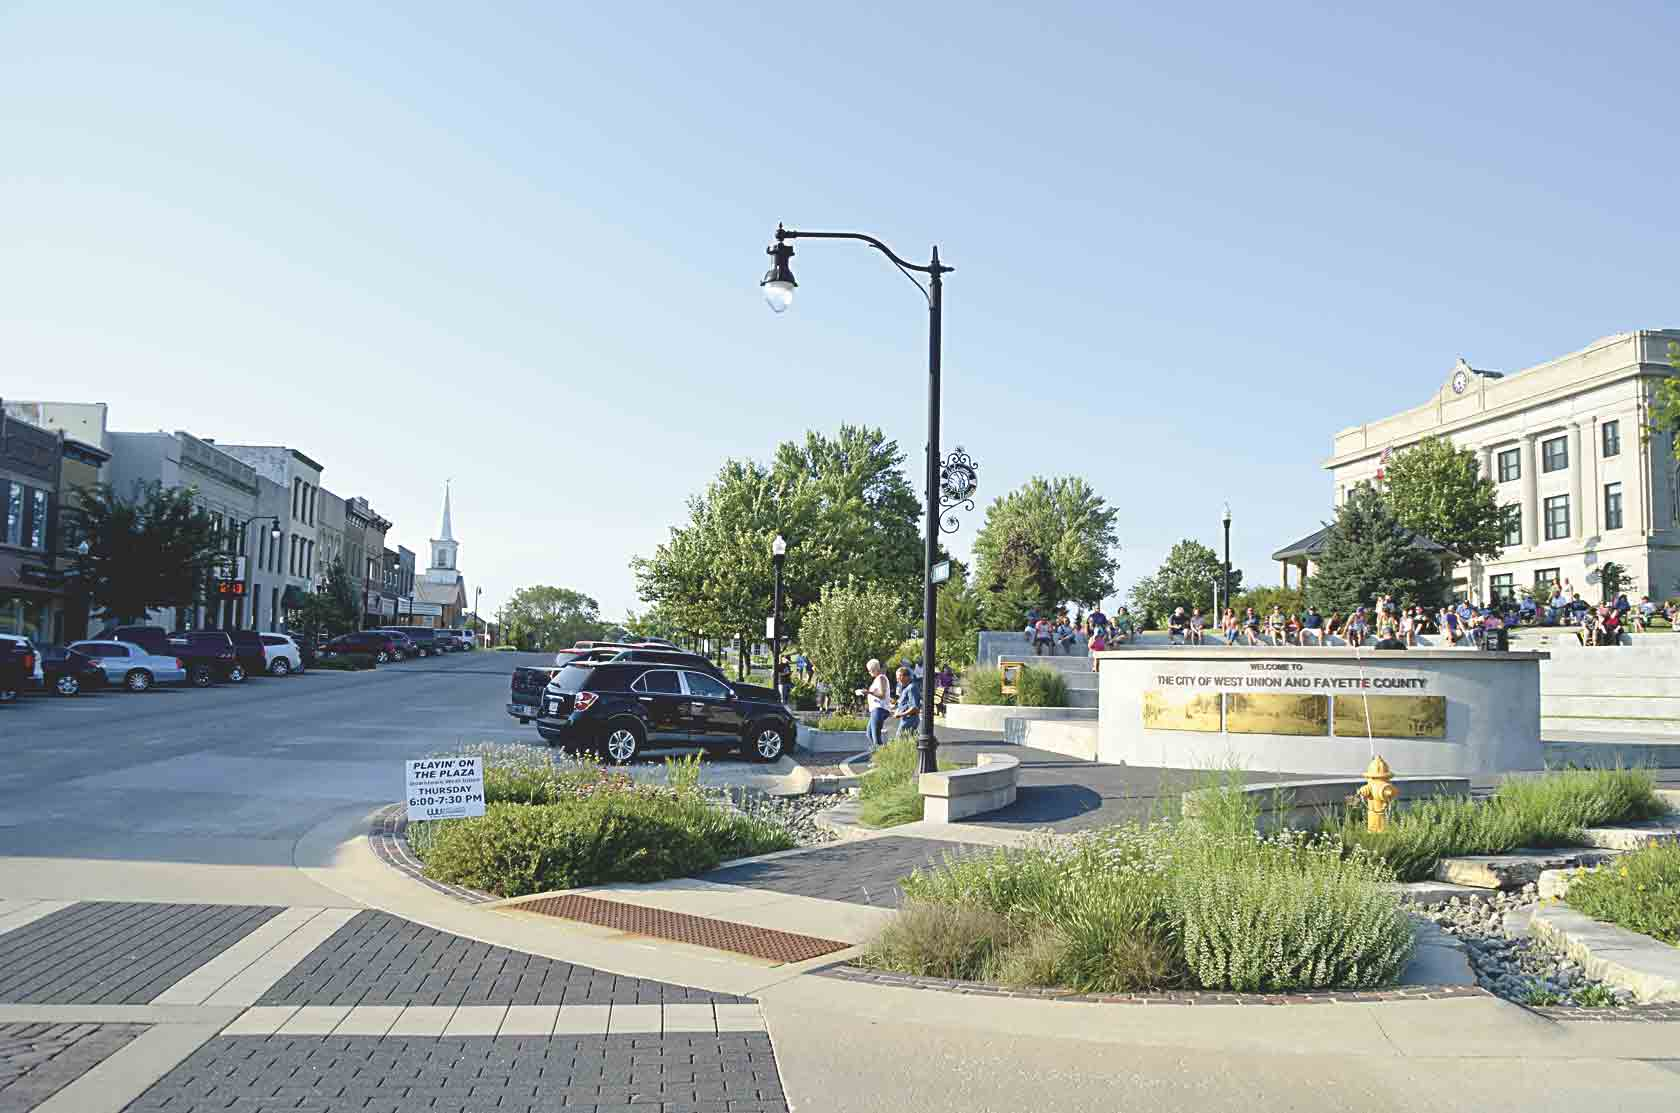 Wednesday, July 11, was the five-year anniversary of the grand opening of the West Union Downtown Streetscape Project. The following evening, the Civic Plaza at the corner of Vine and Elm streets was filled with local residents enjoying the beauty of the streetscape during the Playin...